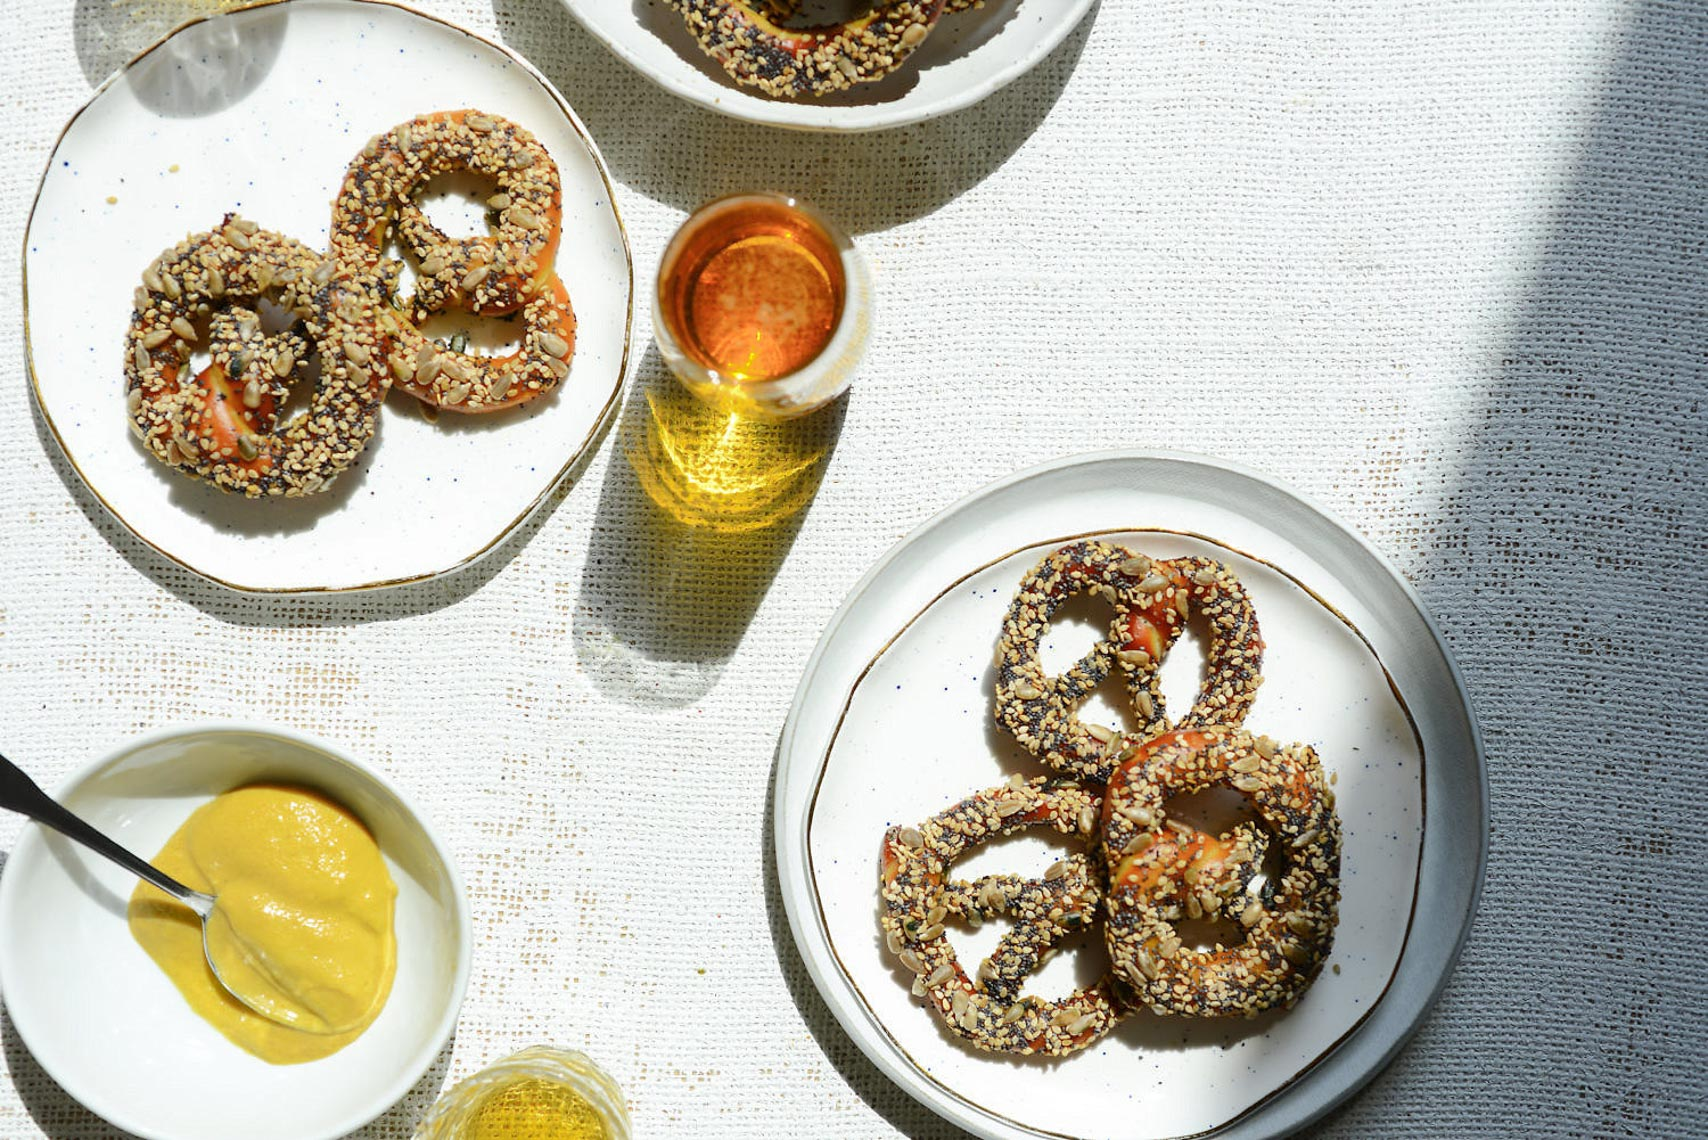 Large Pretzel Snacks on Plate with Beer and Mustard